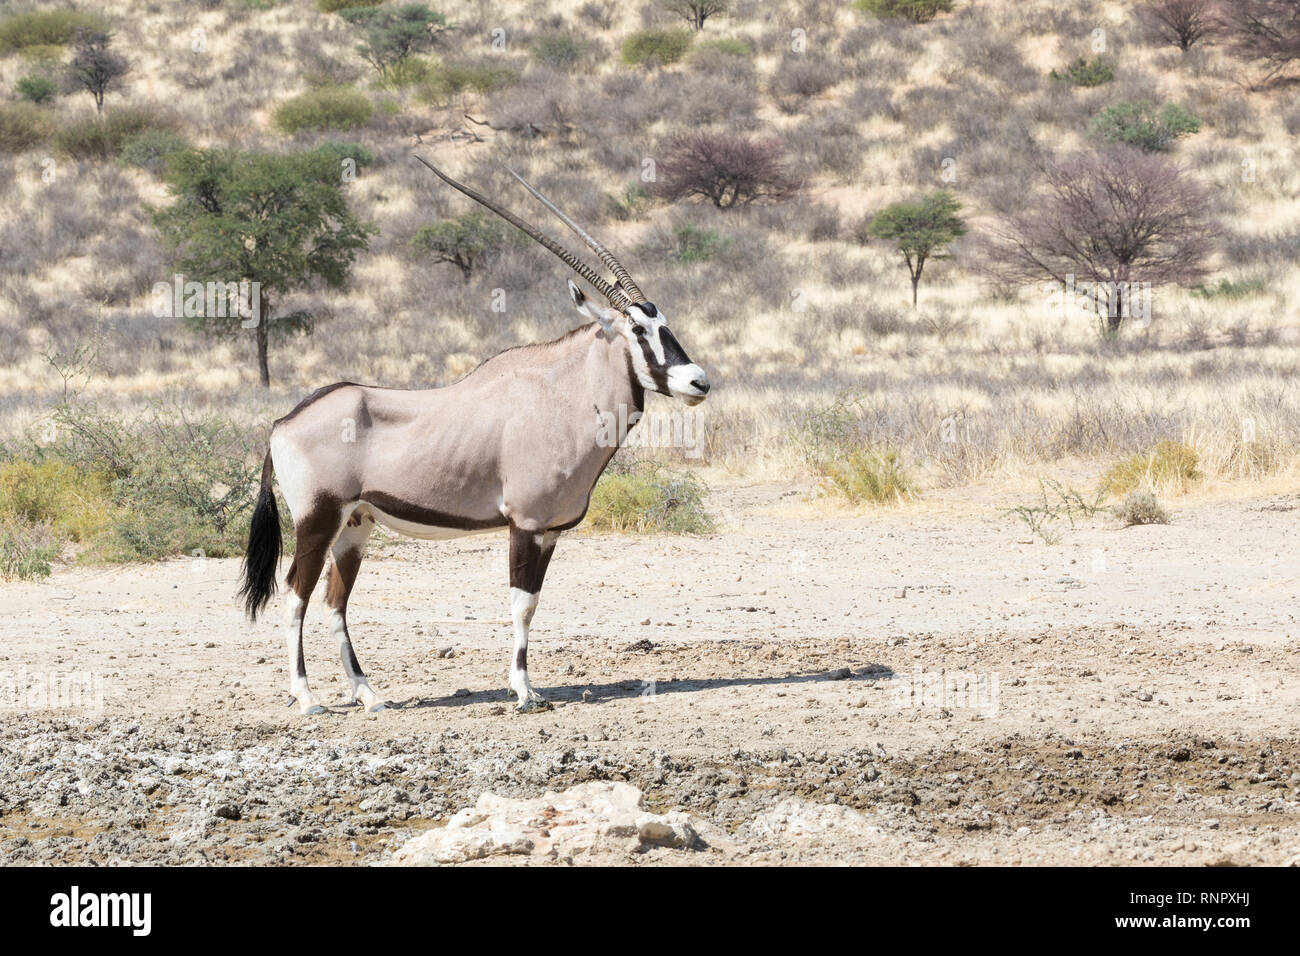 Gemsbok, Oryx gazella, in the Kgalagadi Transfrontier, National Park, Northern Cape, South Africa. Standing at seepage water in arid Savannah with aca - Stock Image